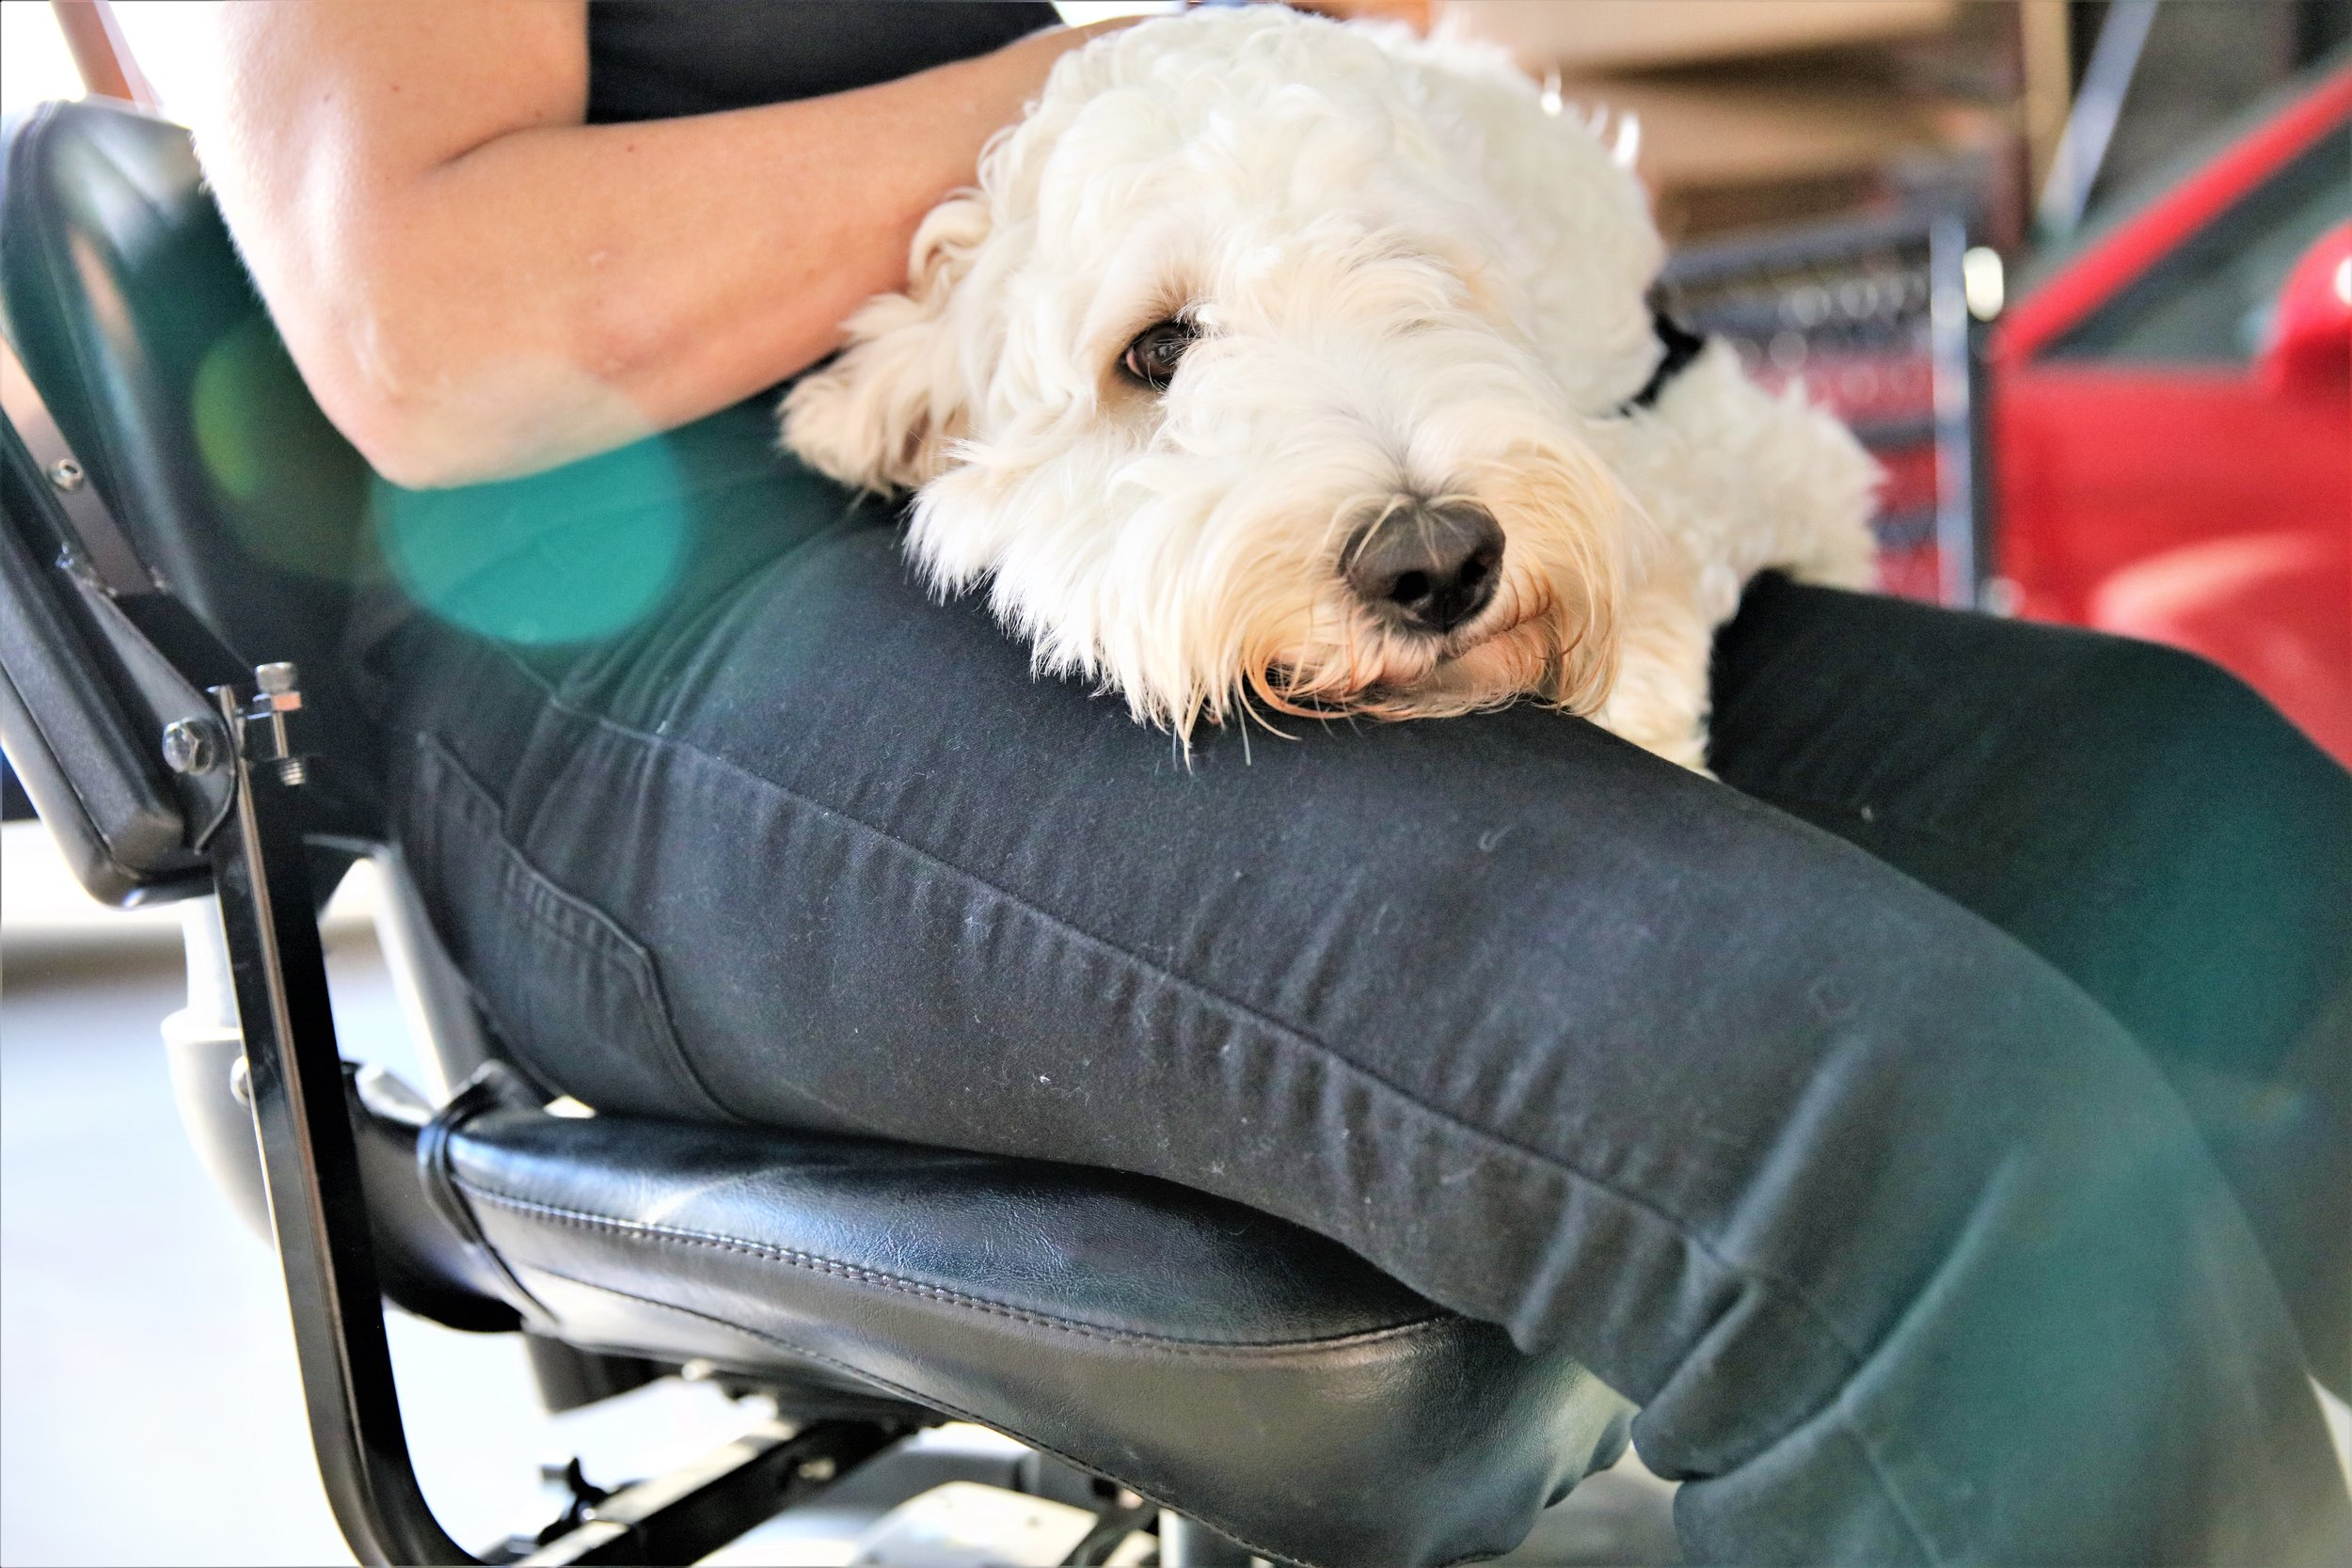 A white service dog puts her head on her handler's lap while the handler sits in her wheelchair.